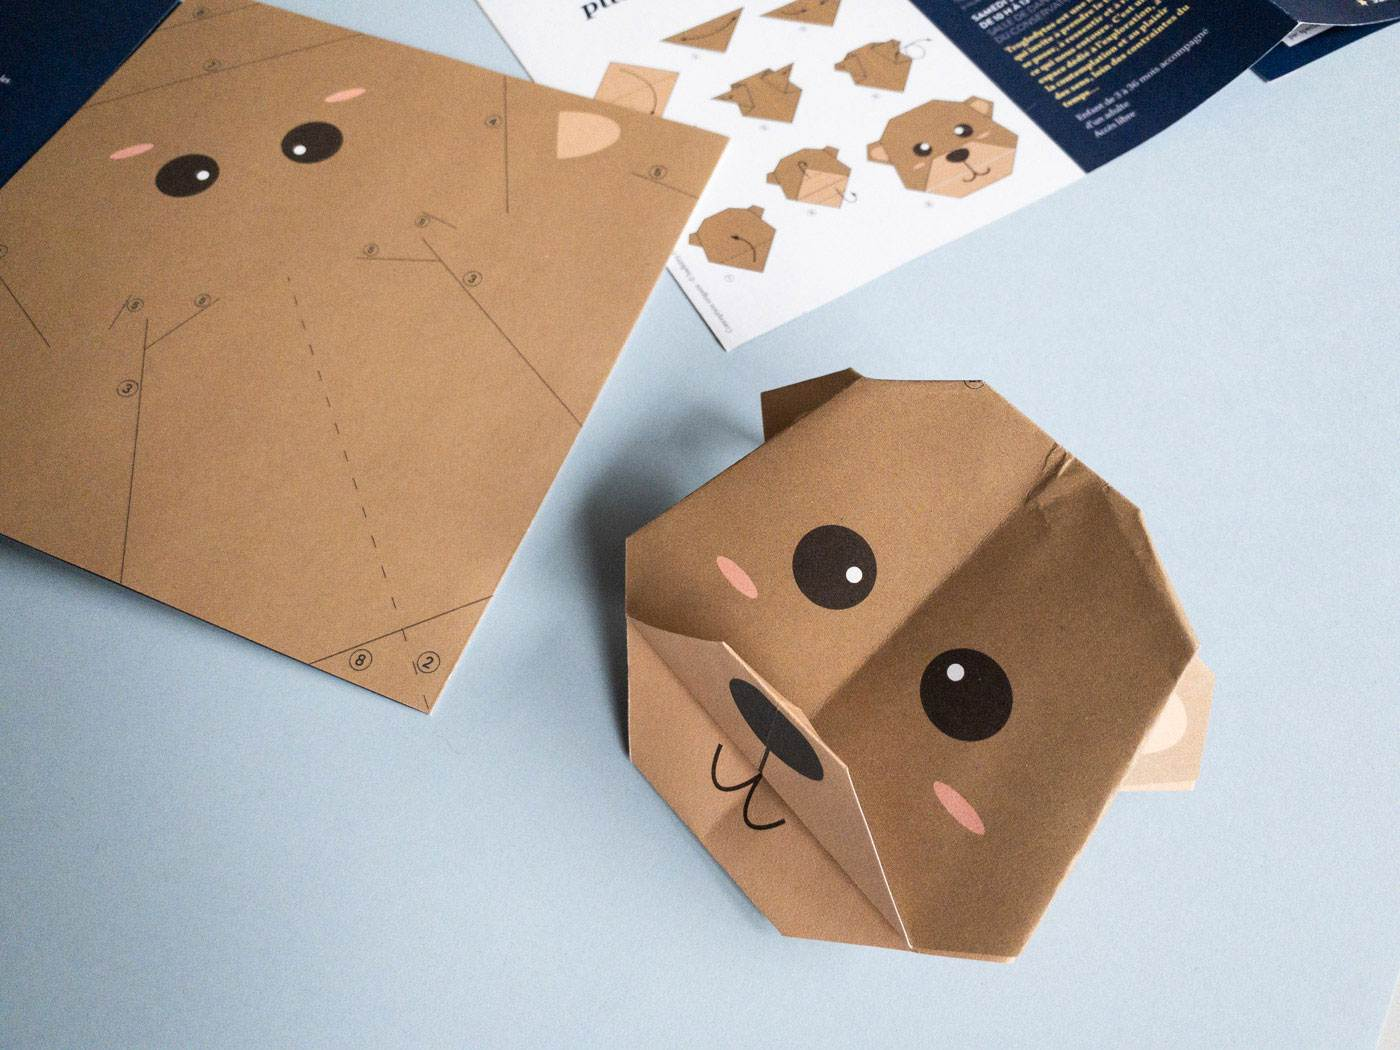 agence-bad-kitty-papier-origami